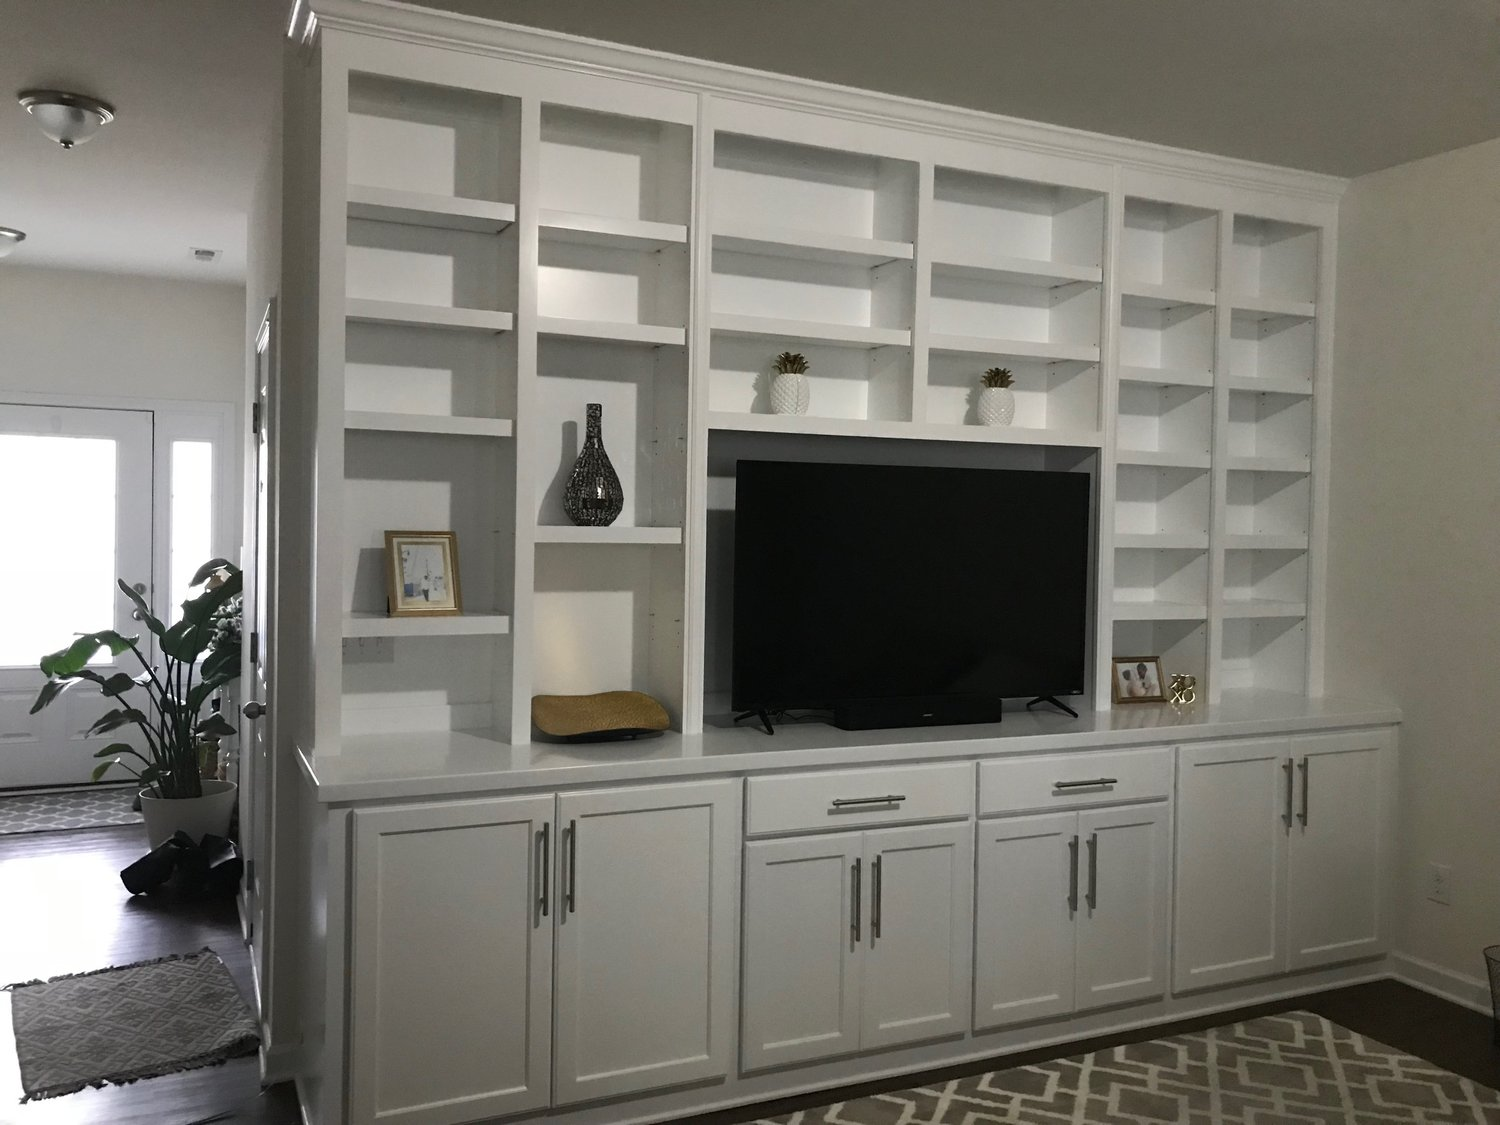 Built-In with Adjustable Shelves, TV Opening, Shaker Doors, Slab Drawers & Crown